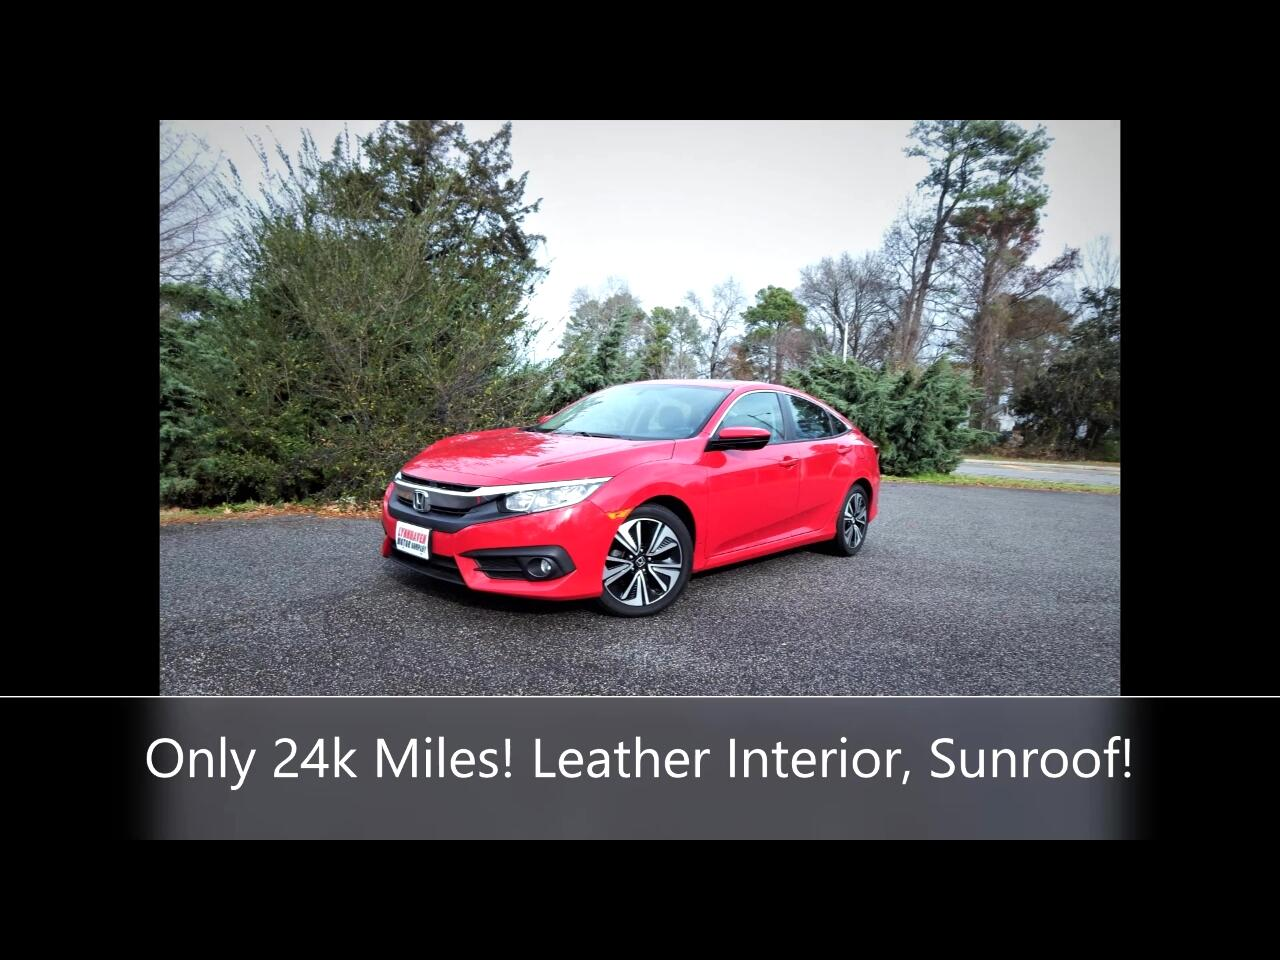 Honda Civic EX-L Sedan 2016